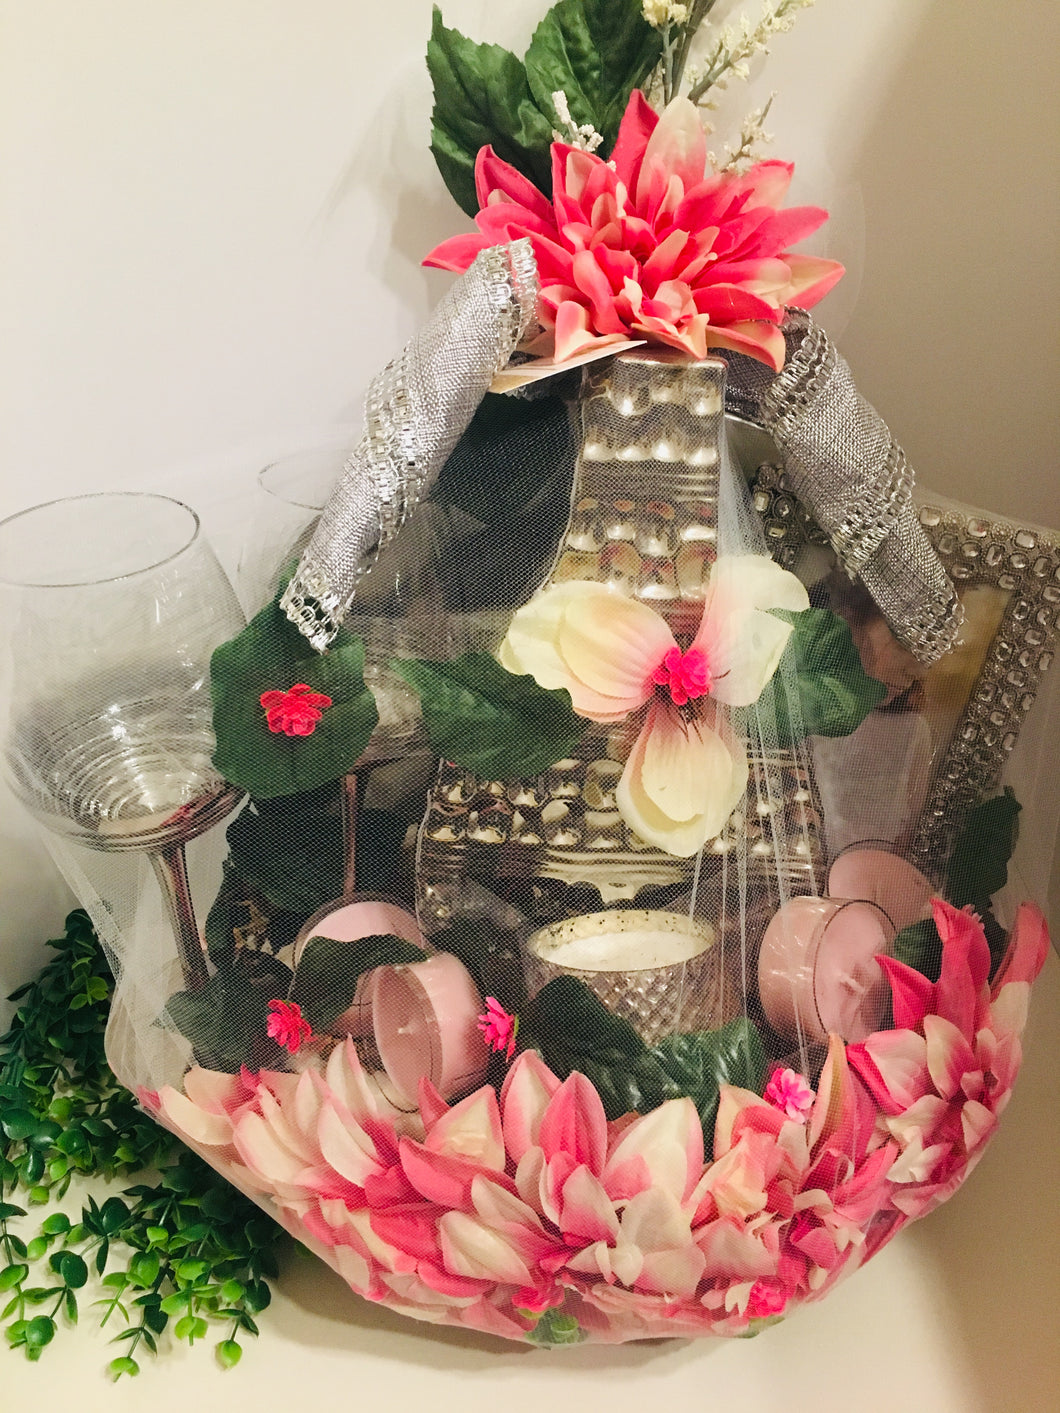 Luxurious getaway basket for your lover!